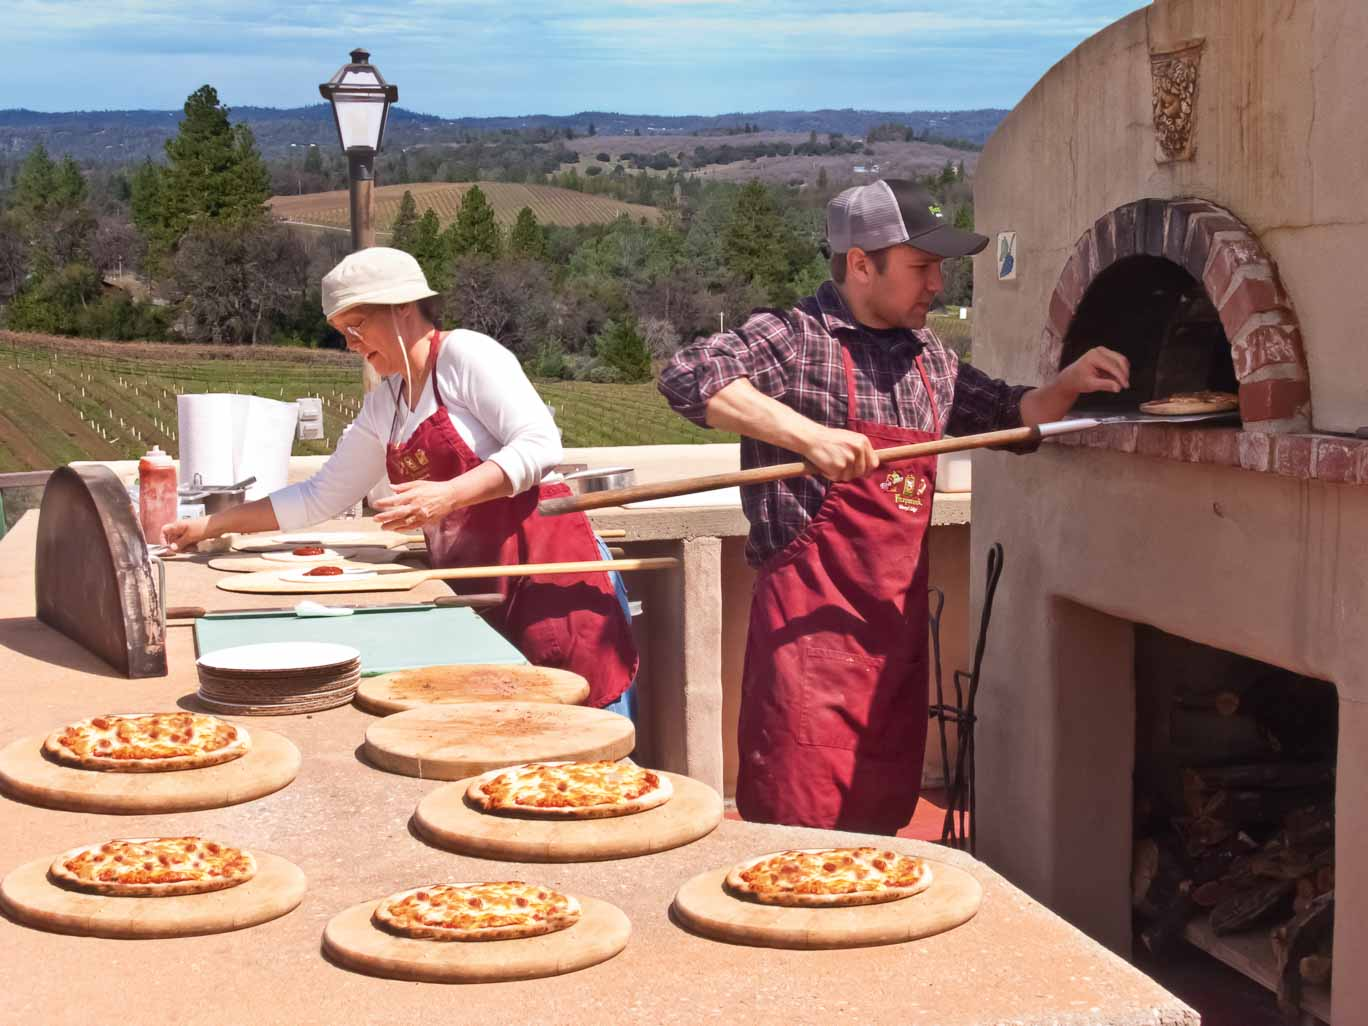 Photography: Woman and man making pizza with the view of the vineyard at a winery event